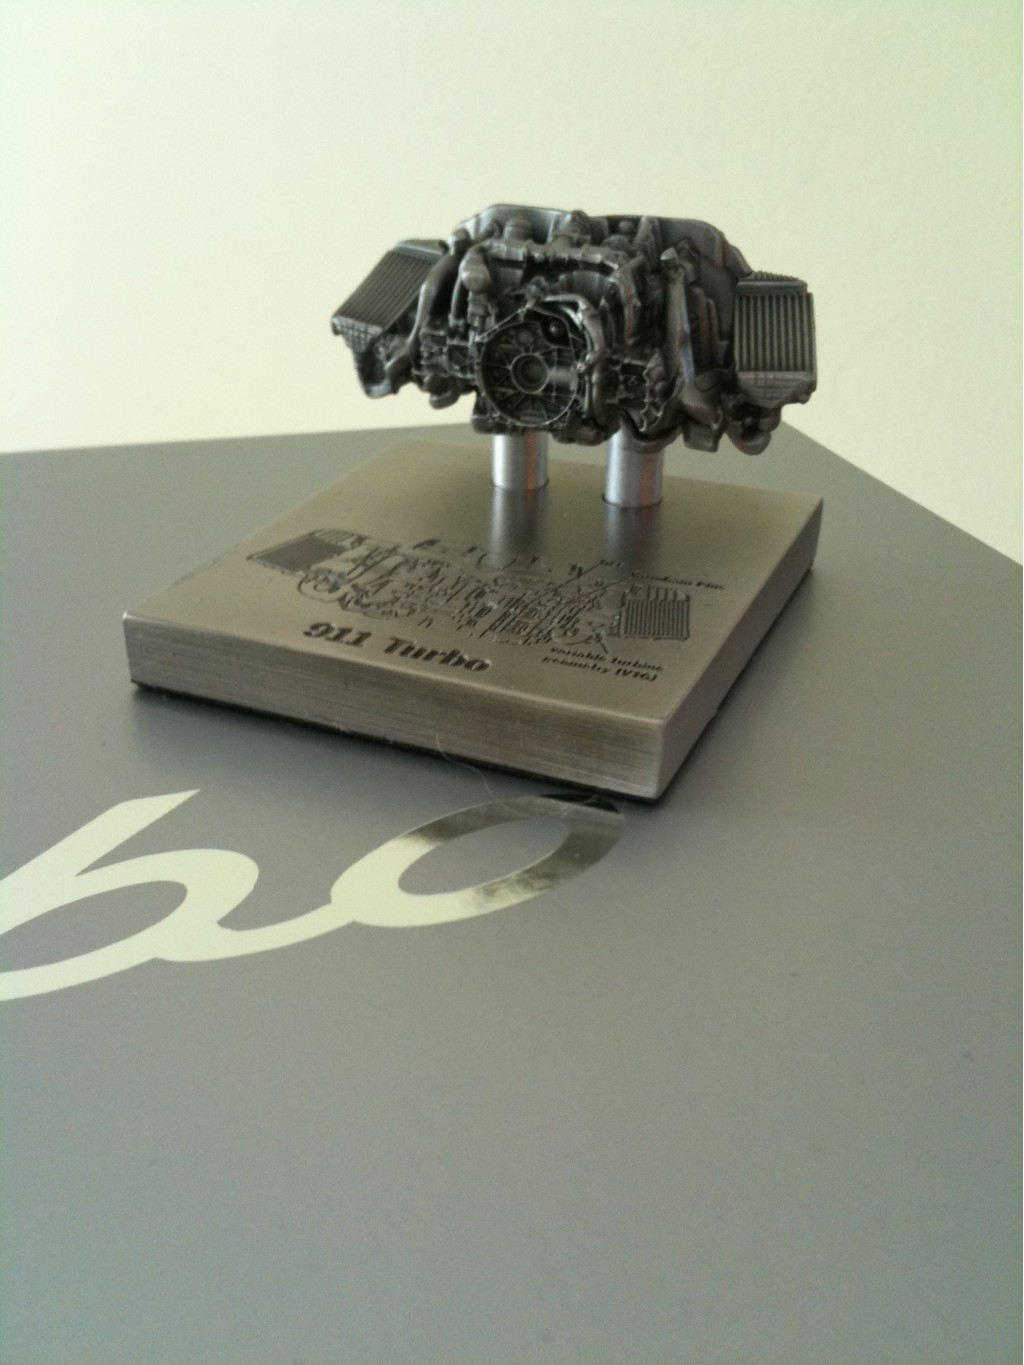 2010 Porsche 911 Turbo engine die-cast model